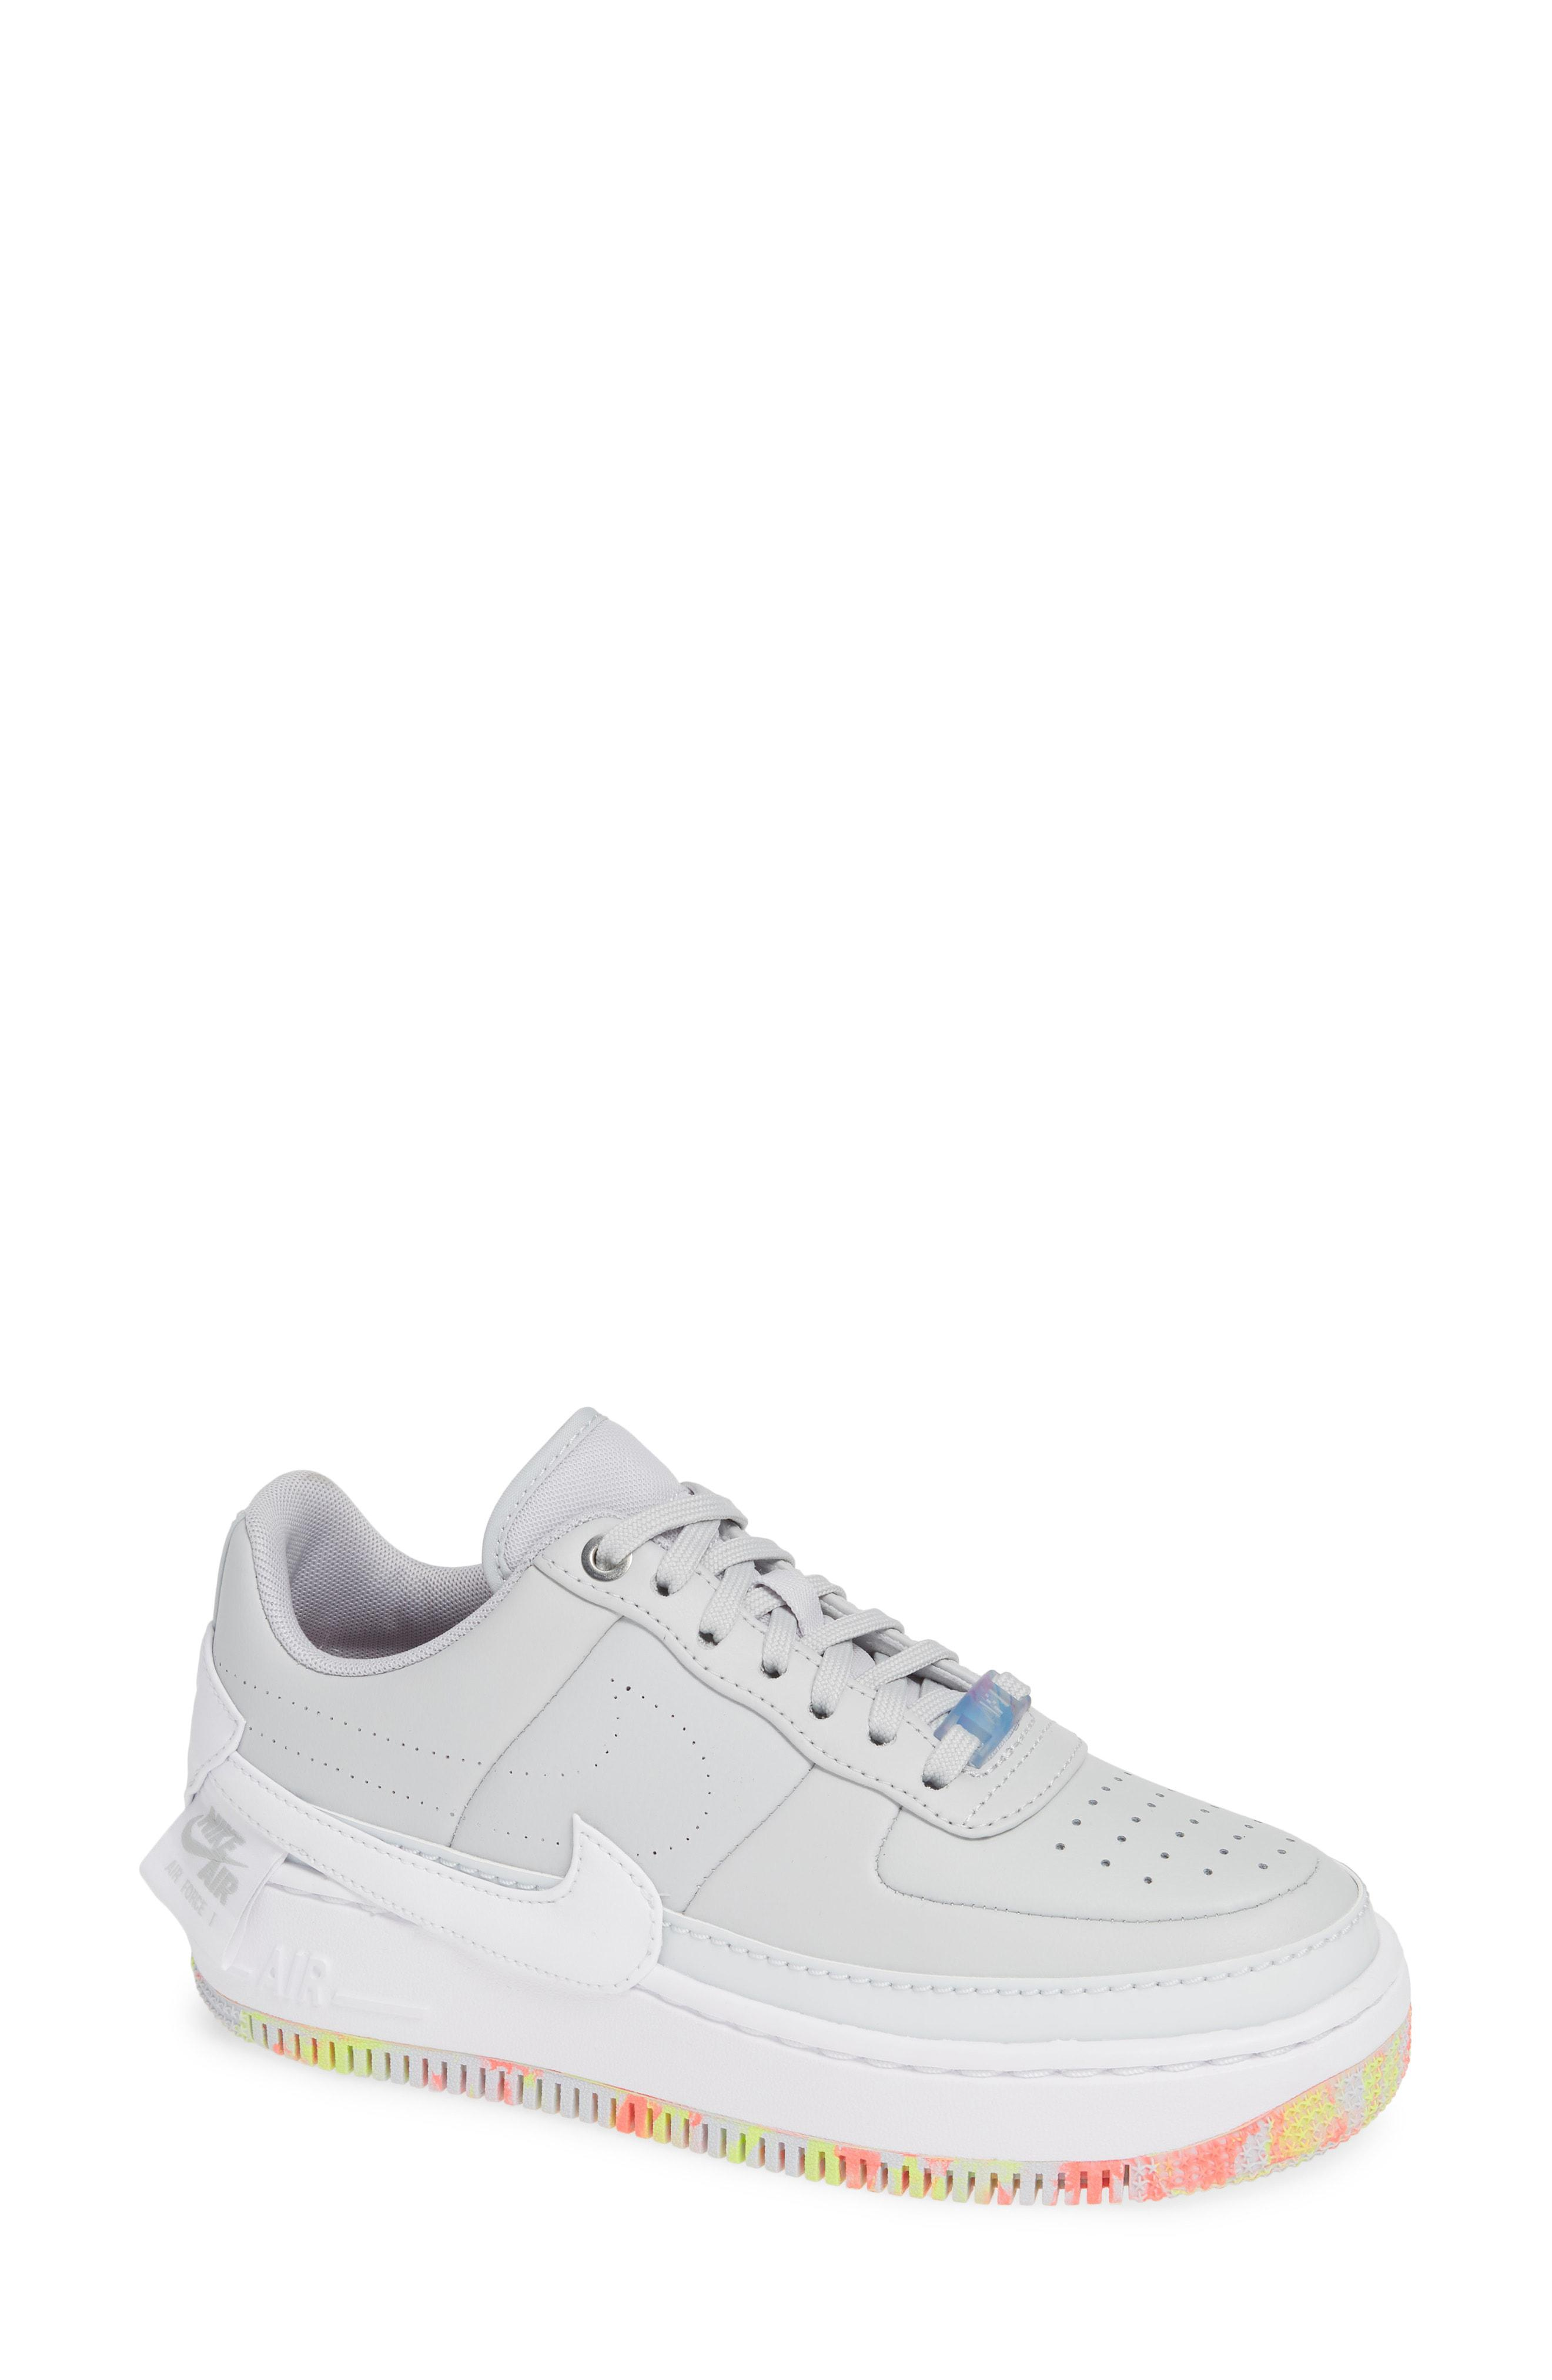 6a2b69513be Lyst - Nike Air Force 1 Jester Xx Print Sneaker in White